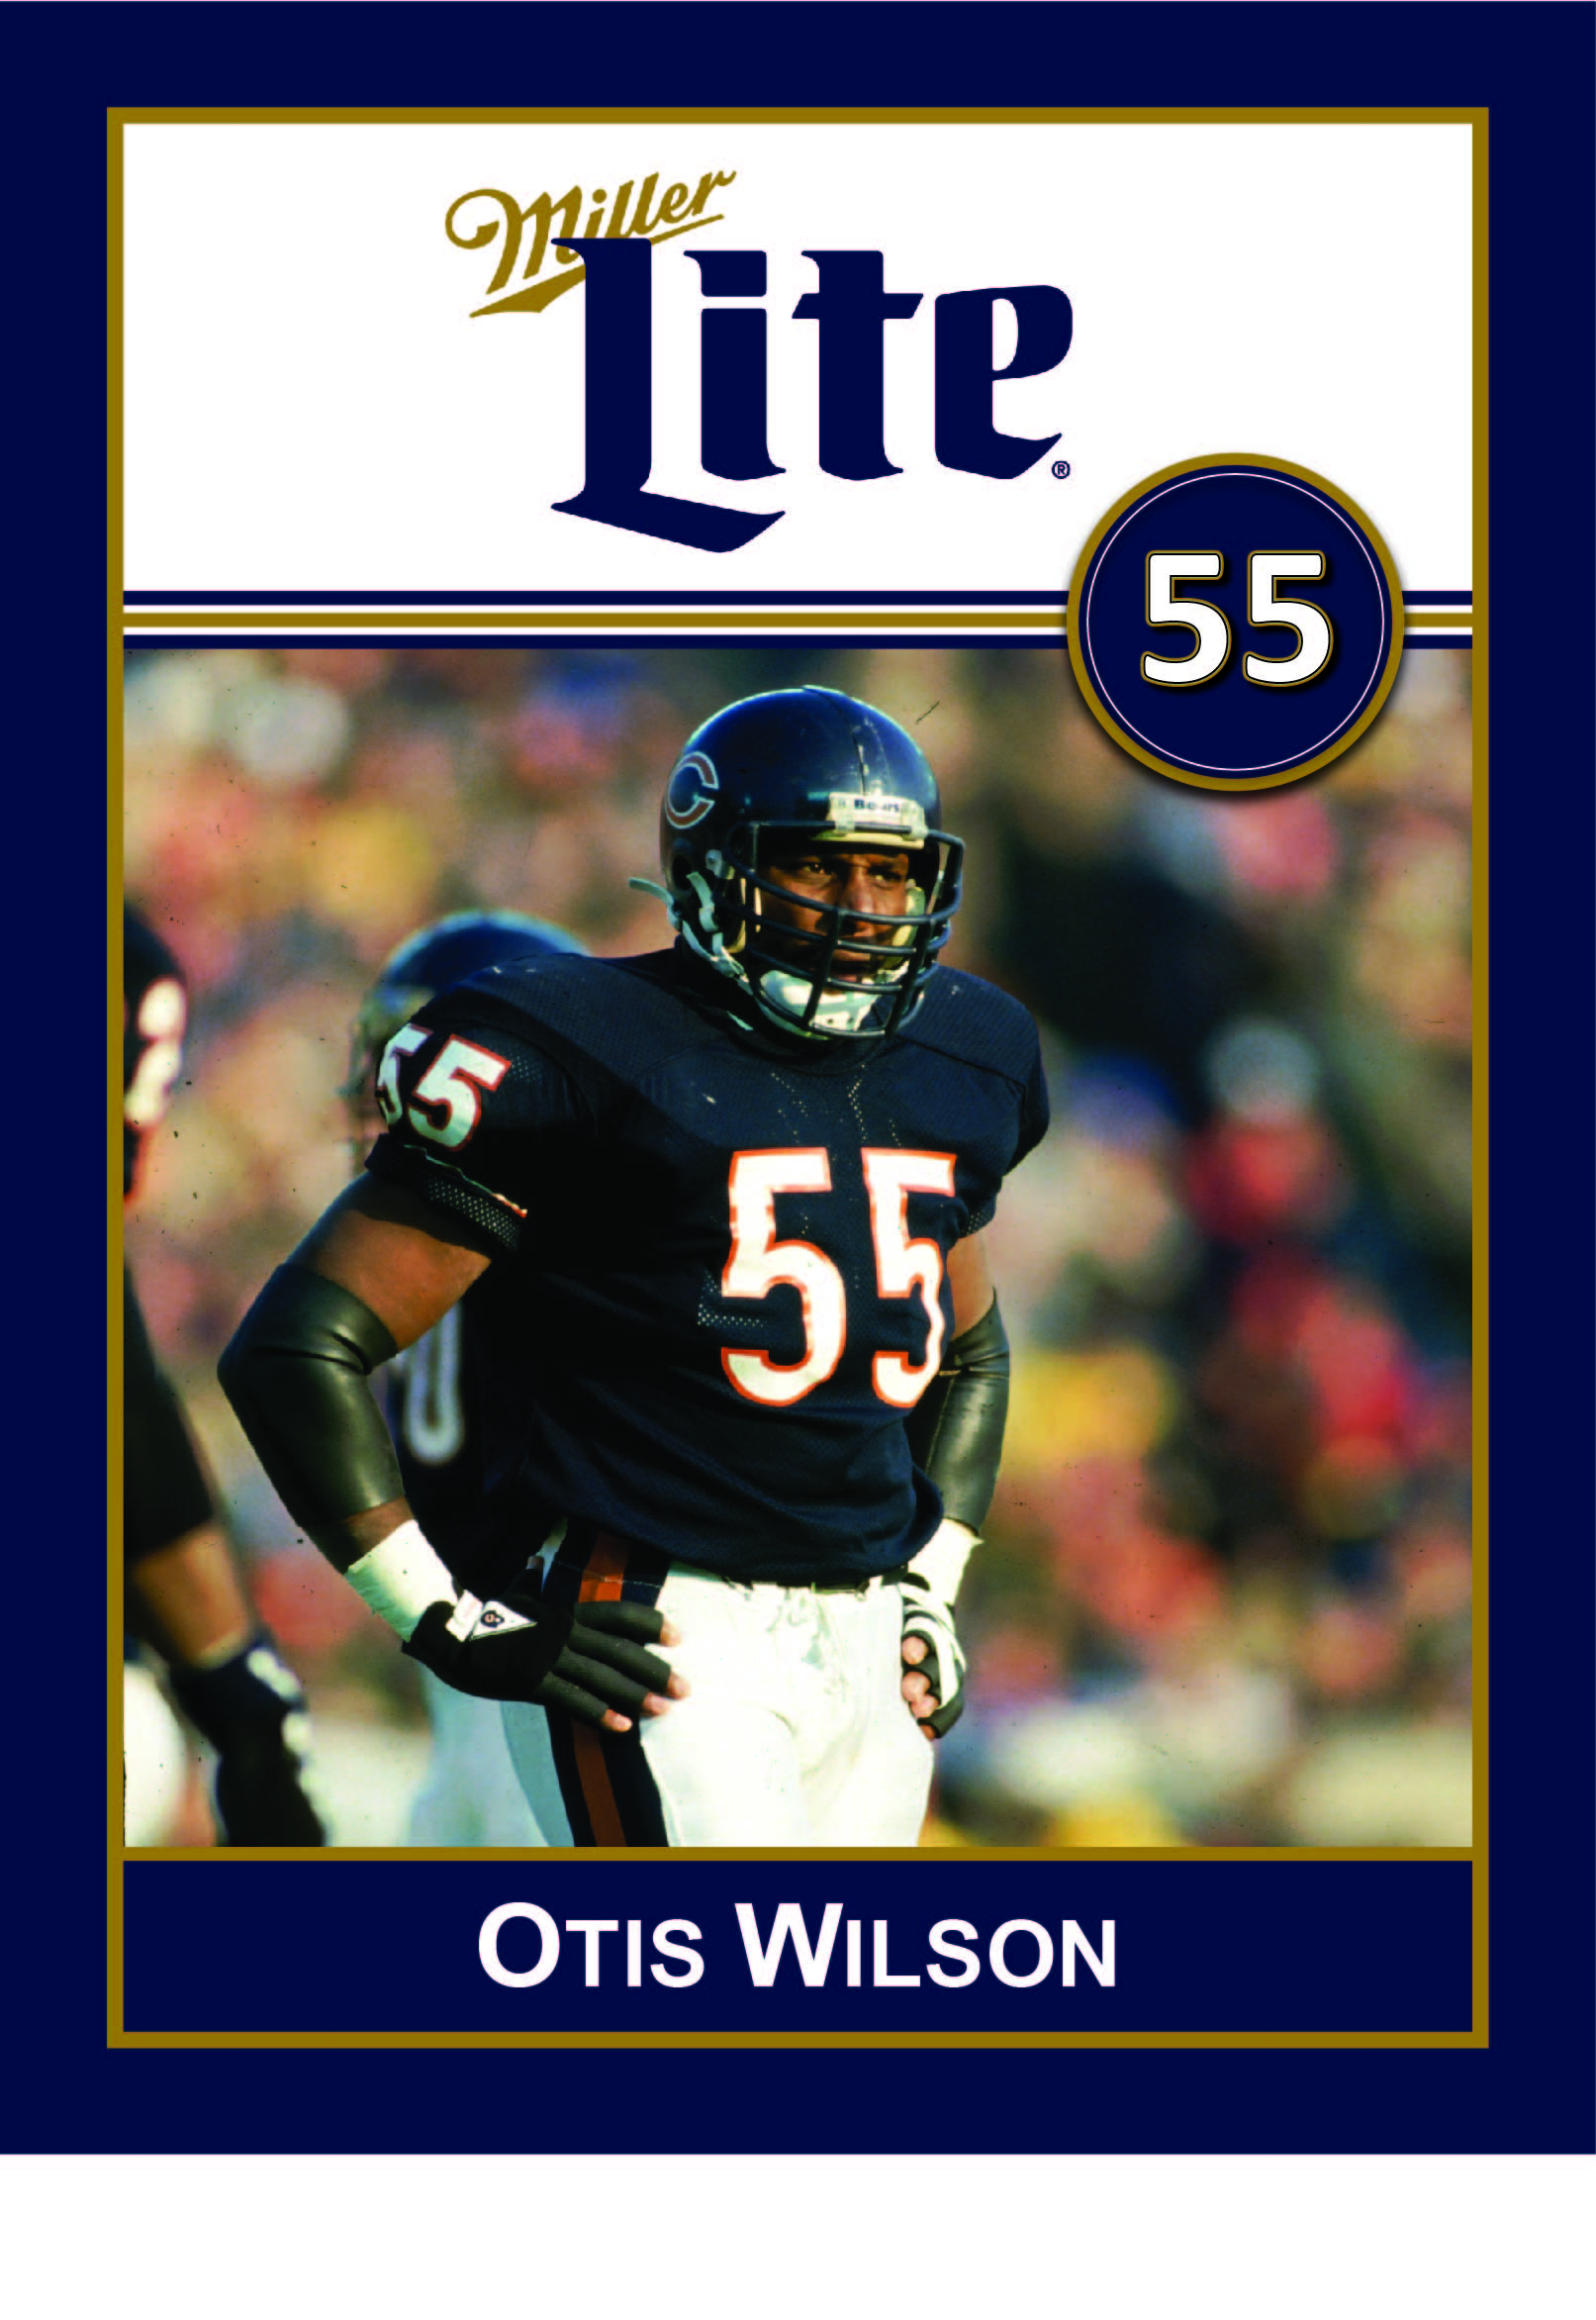 Miller Lite Chicago Bears Alumni Appearance with Otis Wilson